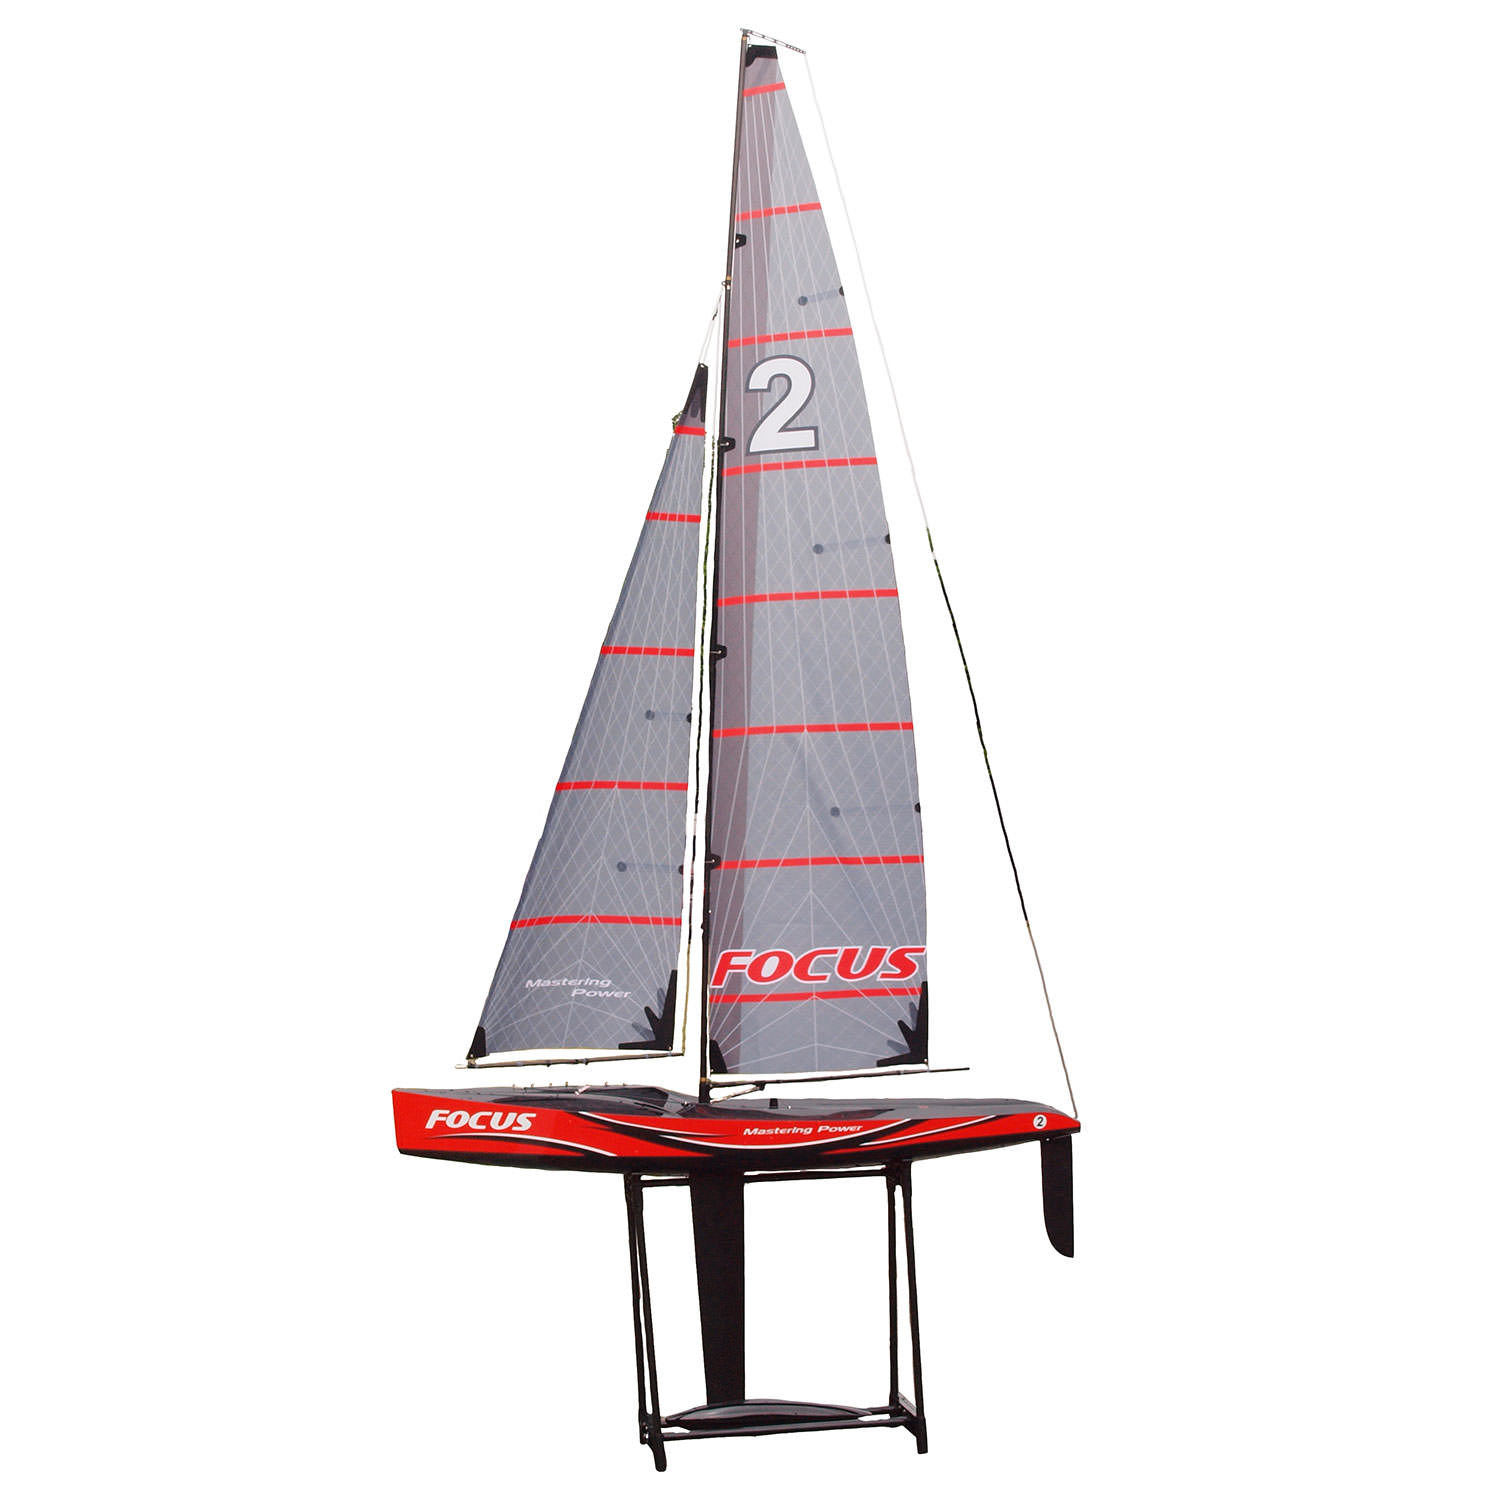 traxxas buy with Joysway 8812 Focus 2 Rc Yacht on Disney Pixar Toy Story 4 Figure Buzz With Belt Grapnel moreover Traxxas E Revo Brushless Best Round Rc Car Money Can Buy  ment 10141 moreover Watch further 181165004888 together with Joysway 8805 V4 Dragonforce 65 Rg65 Class Rc Yacht.